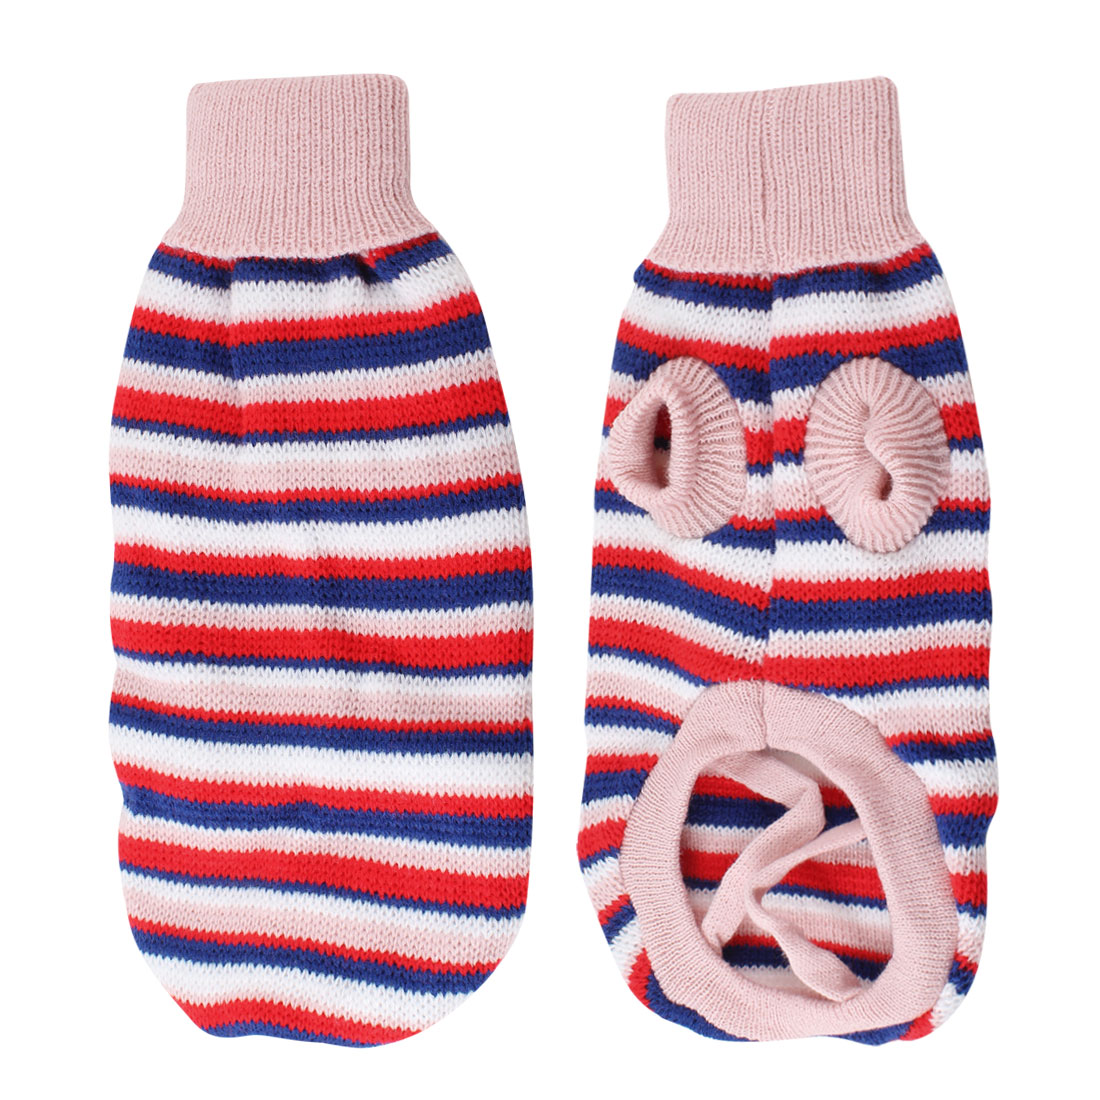 Pet Dog Yorkie White Red Stripe Pattern Knitted Sleeves Sweater Apparel Size XS